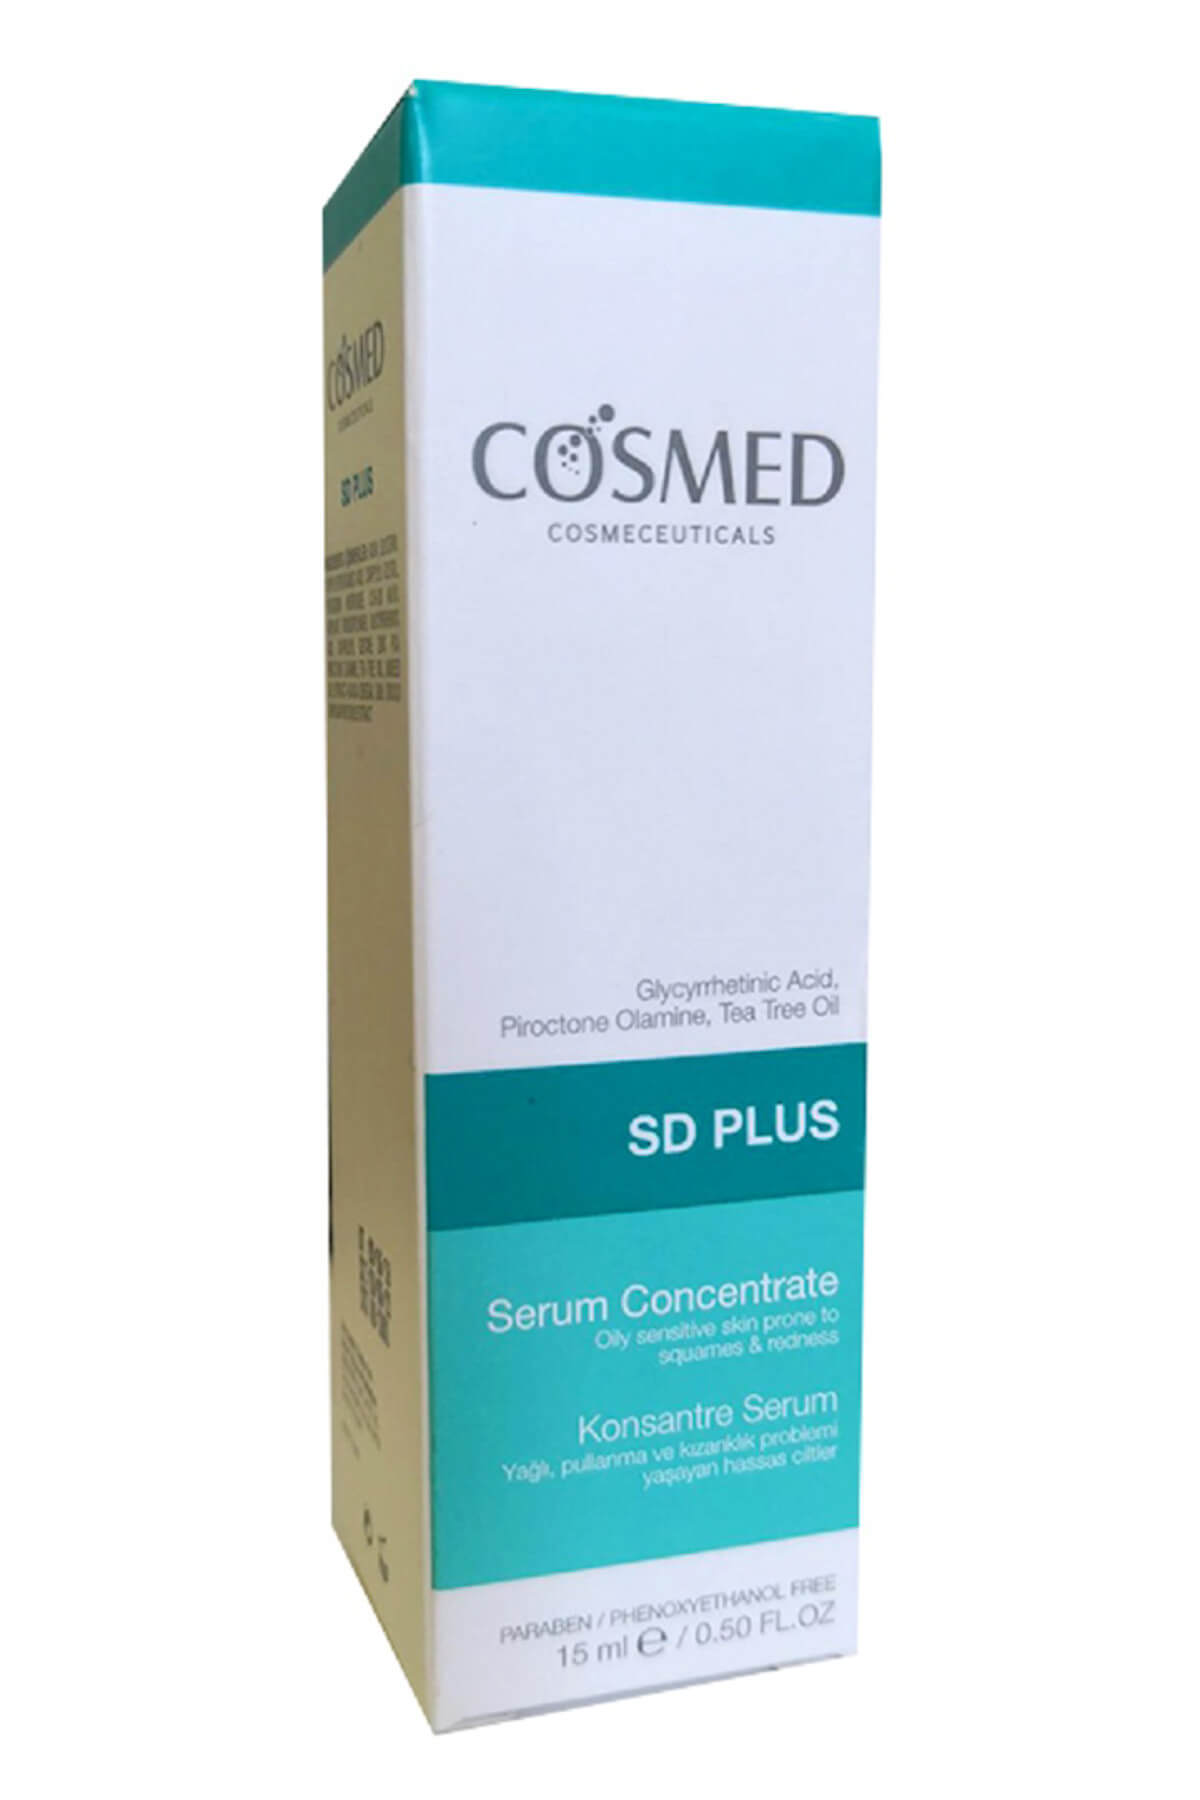 Cosmed Sd Plus Serum Concentratre 15 Ml